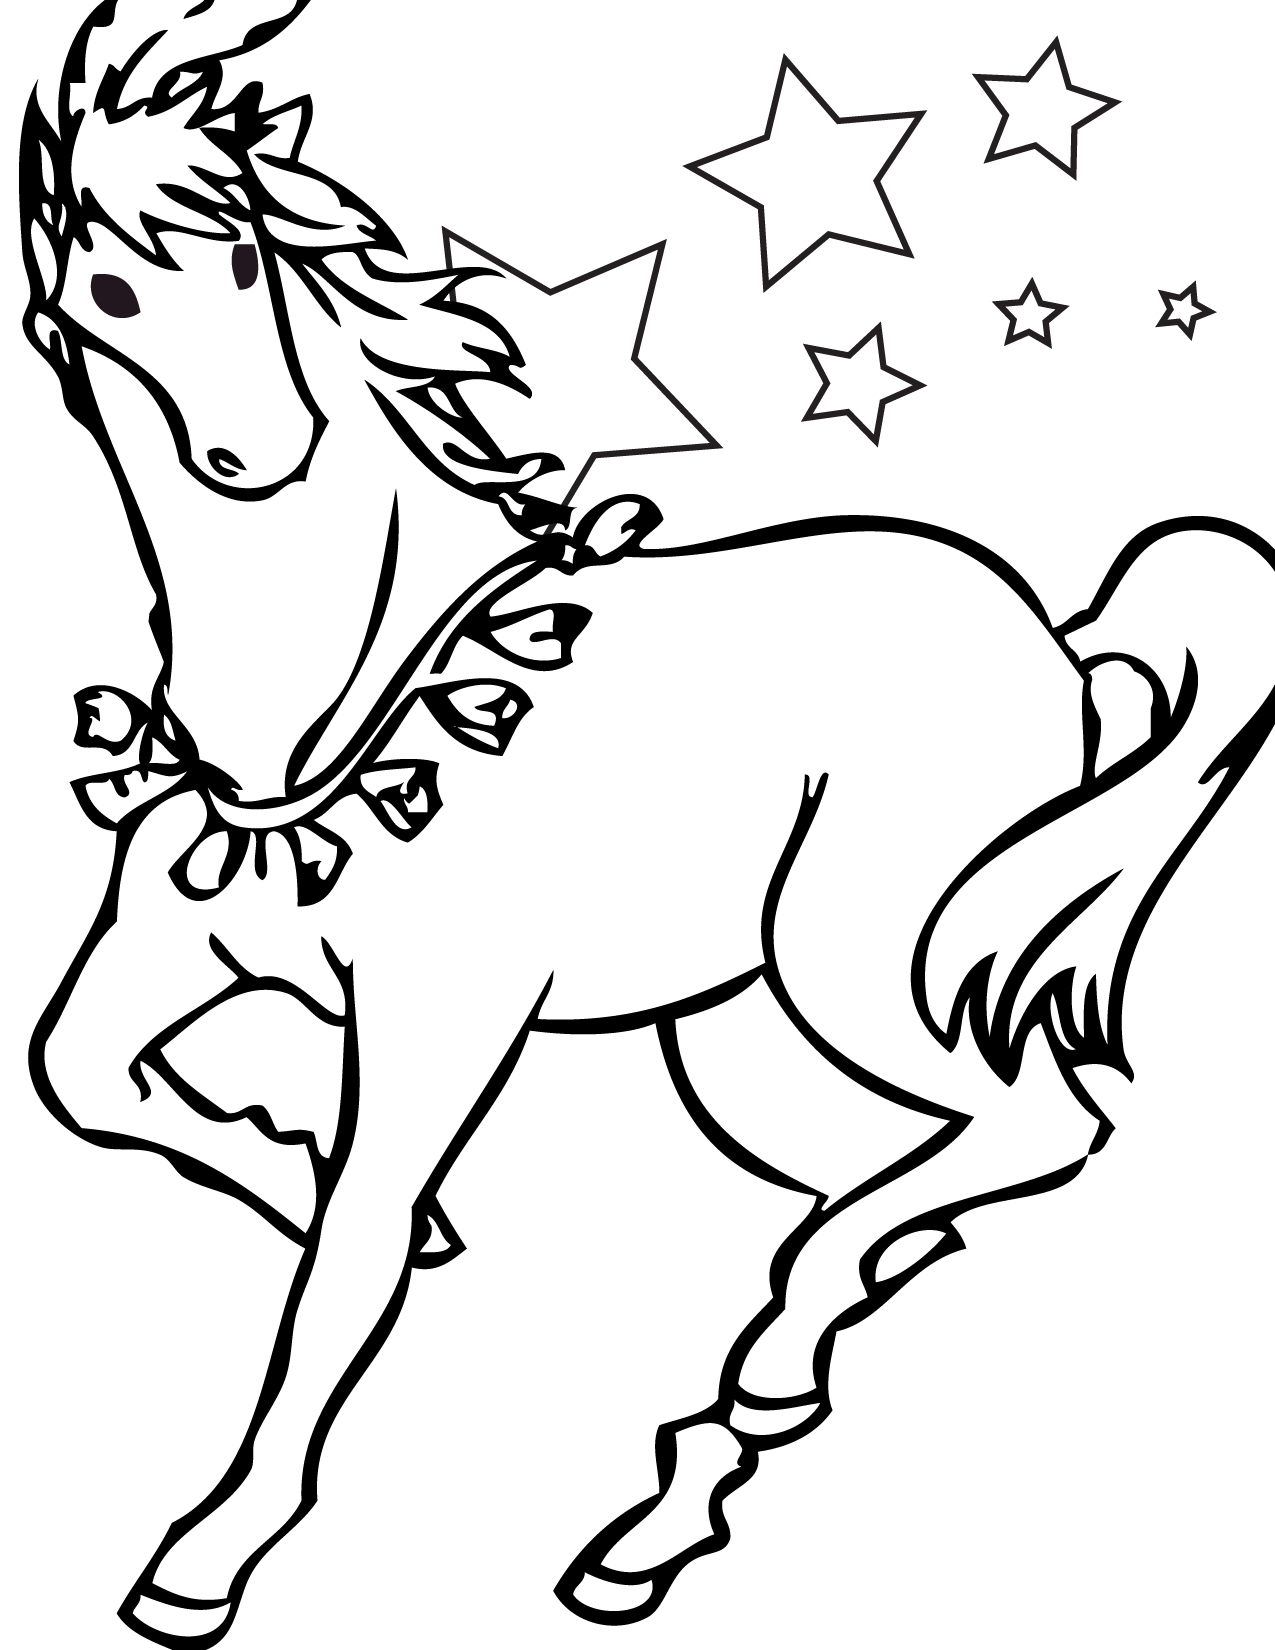 printable horse coloring pages Kaysmakehaukco